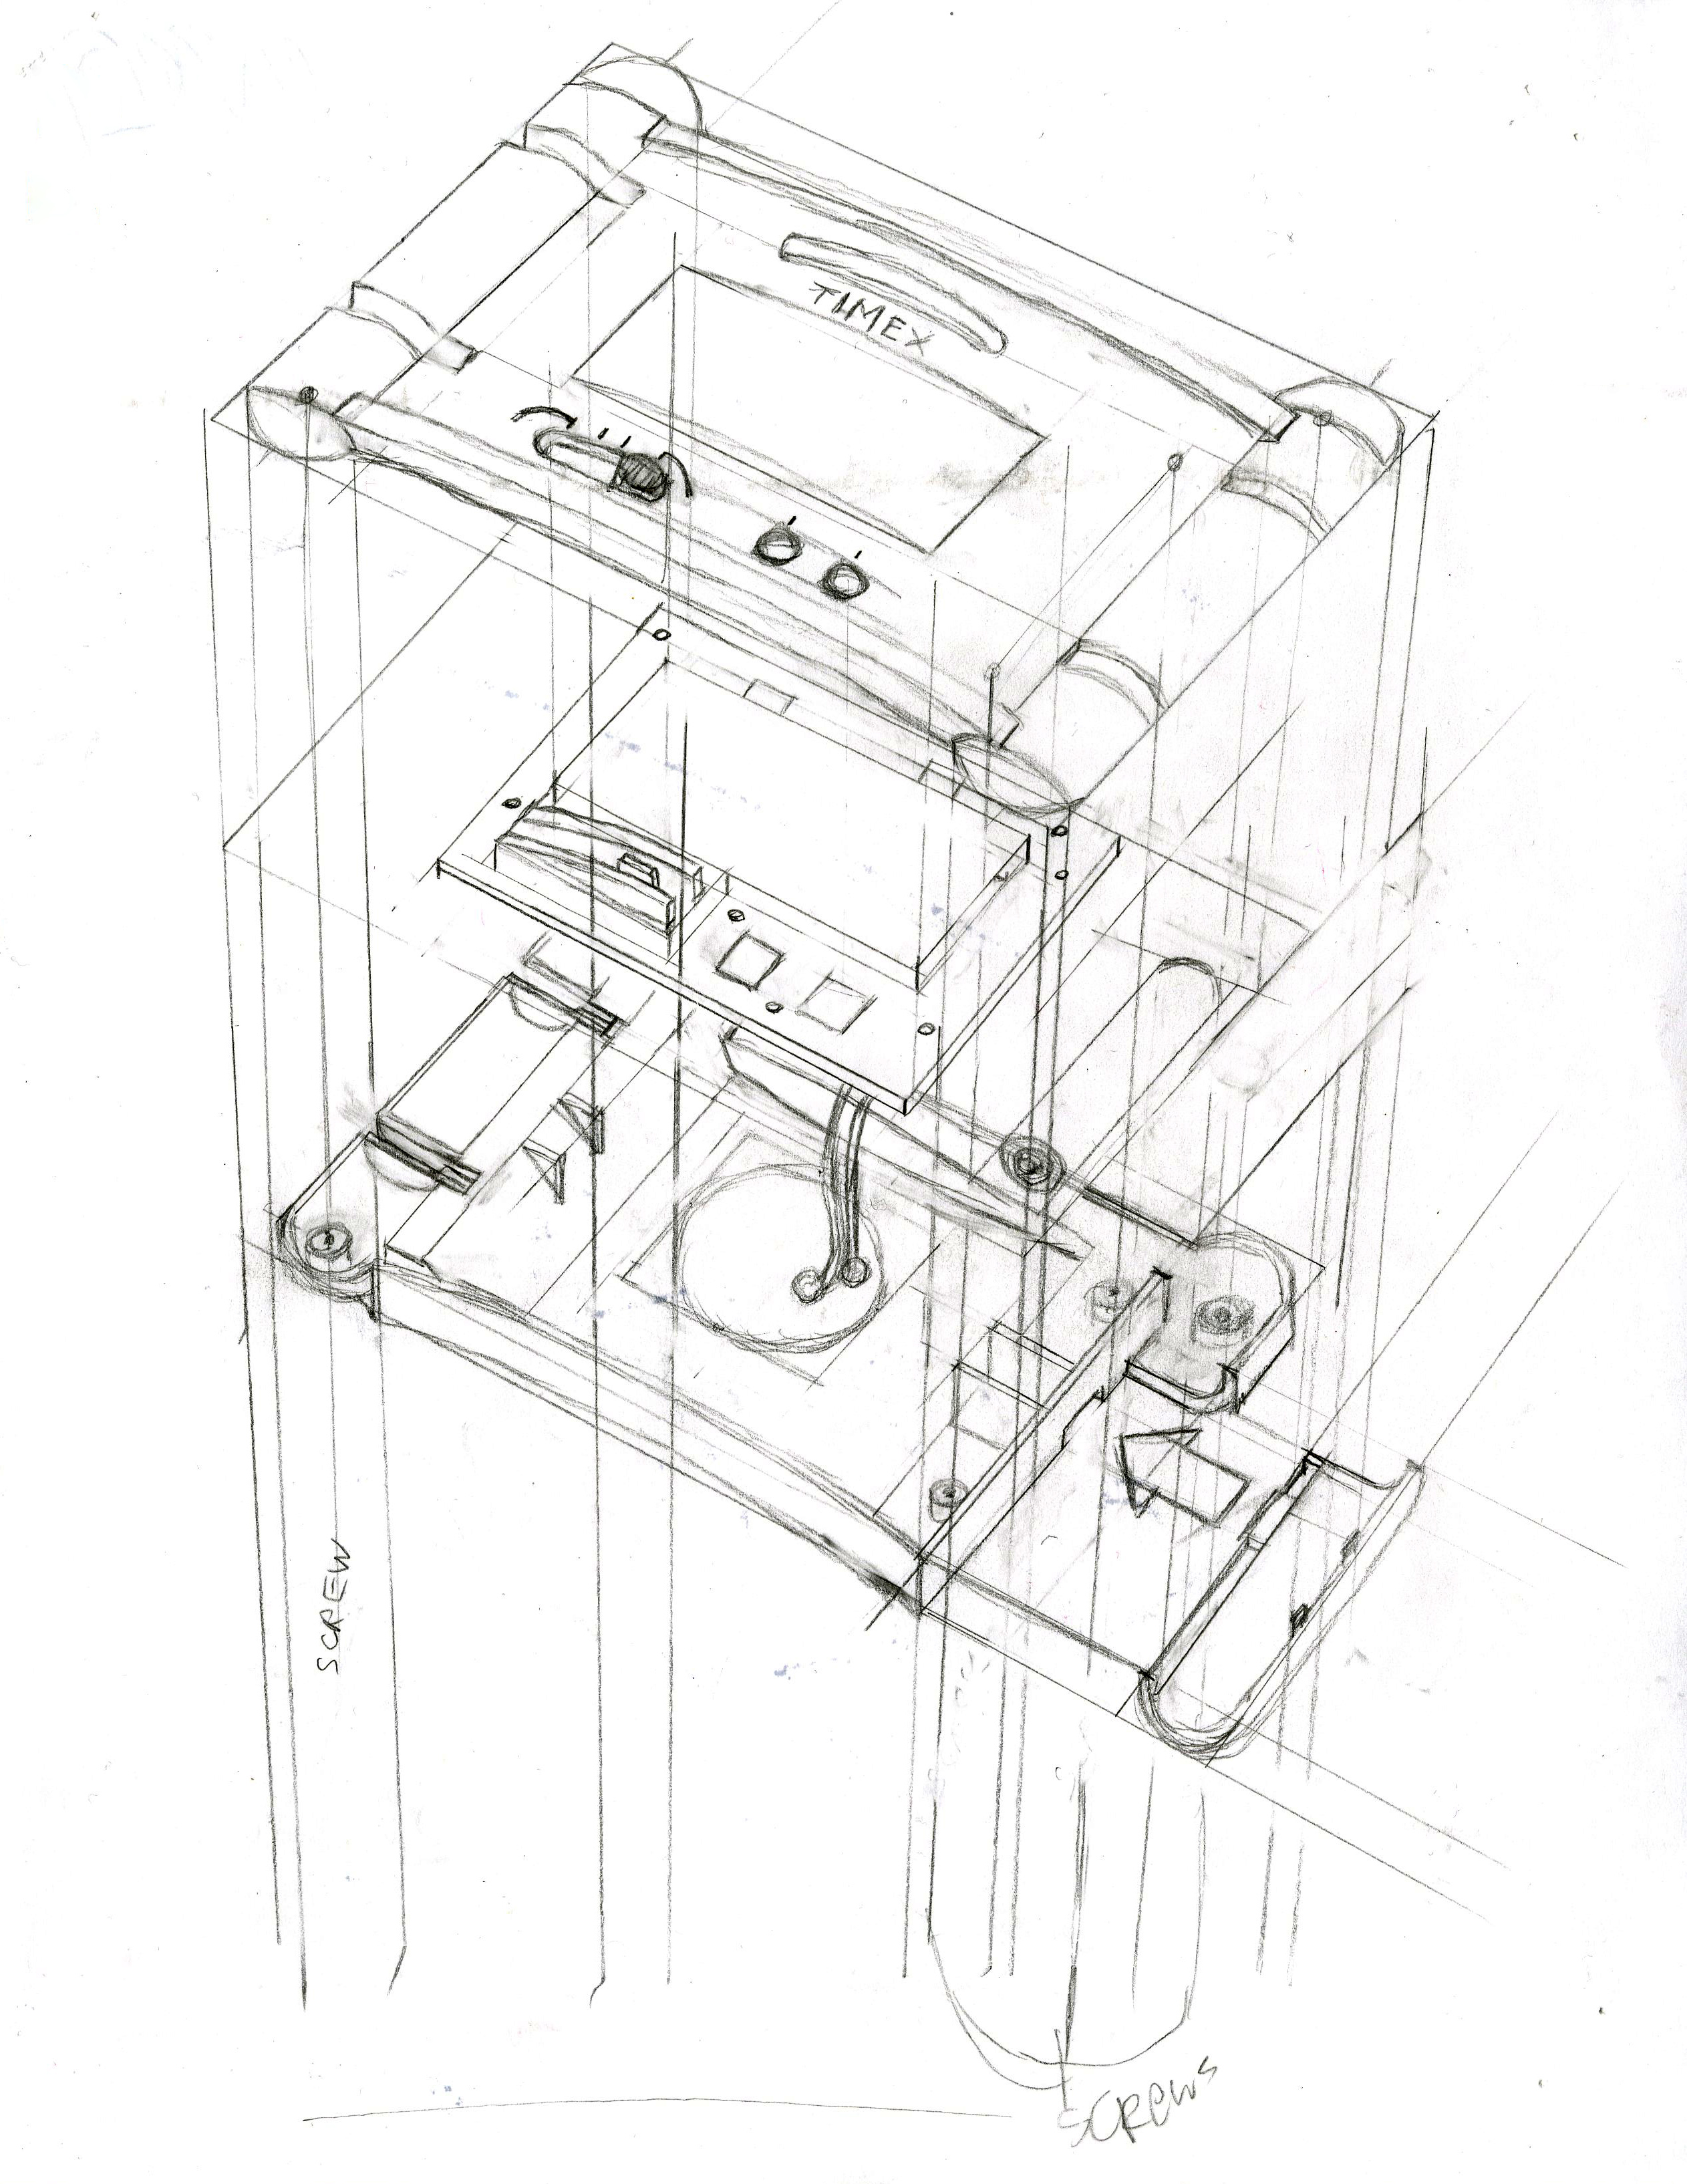 2525x3268 Cwest Industrial Design Perspective Drawings